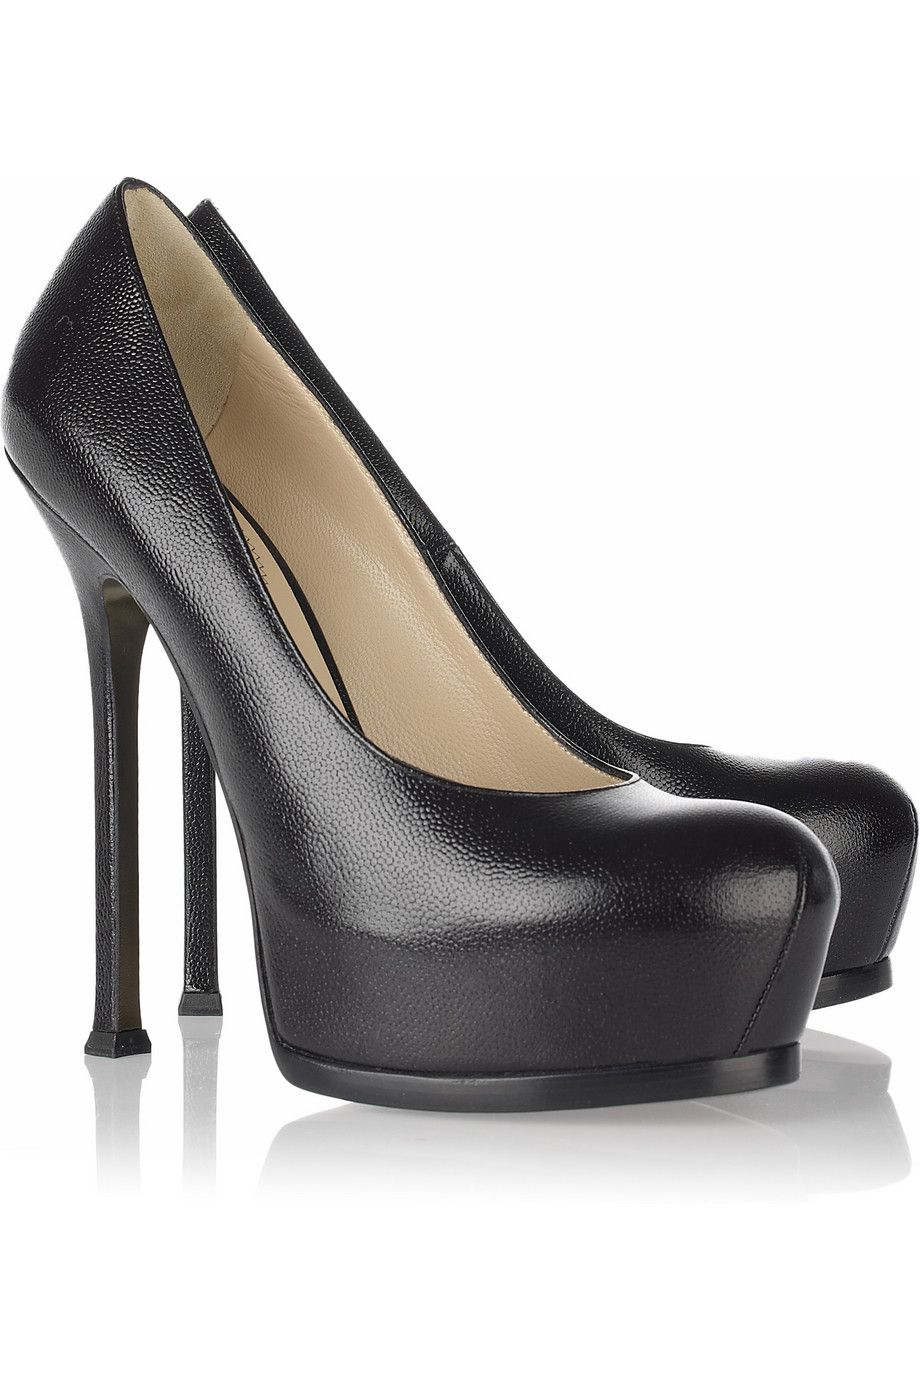 Yves Saint Laurent Tribute Leather Pumps outlet for cheap discount pay with visa sale fashionable real online clearance limited edition lC2pIb